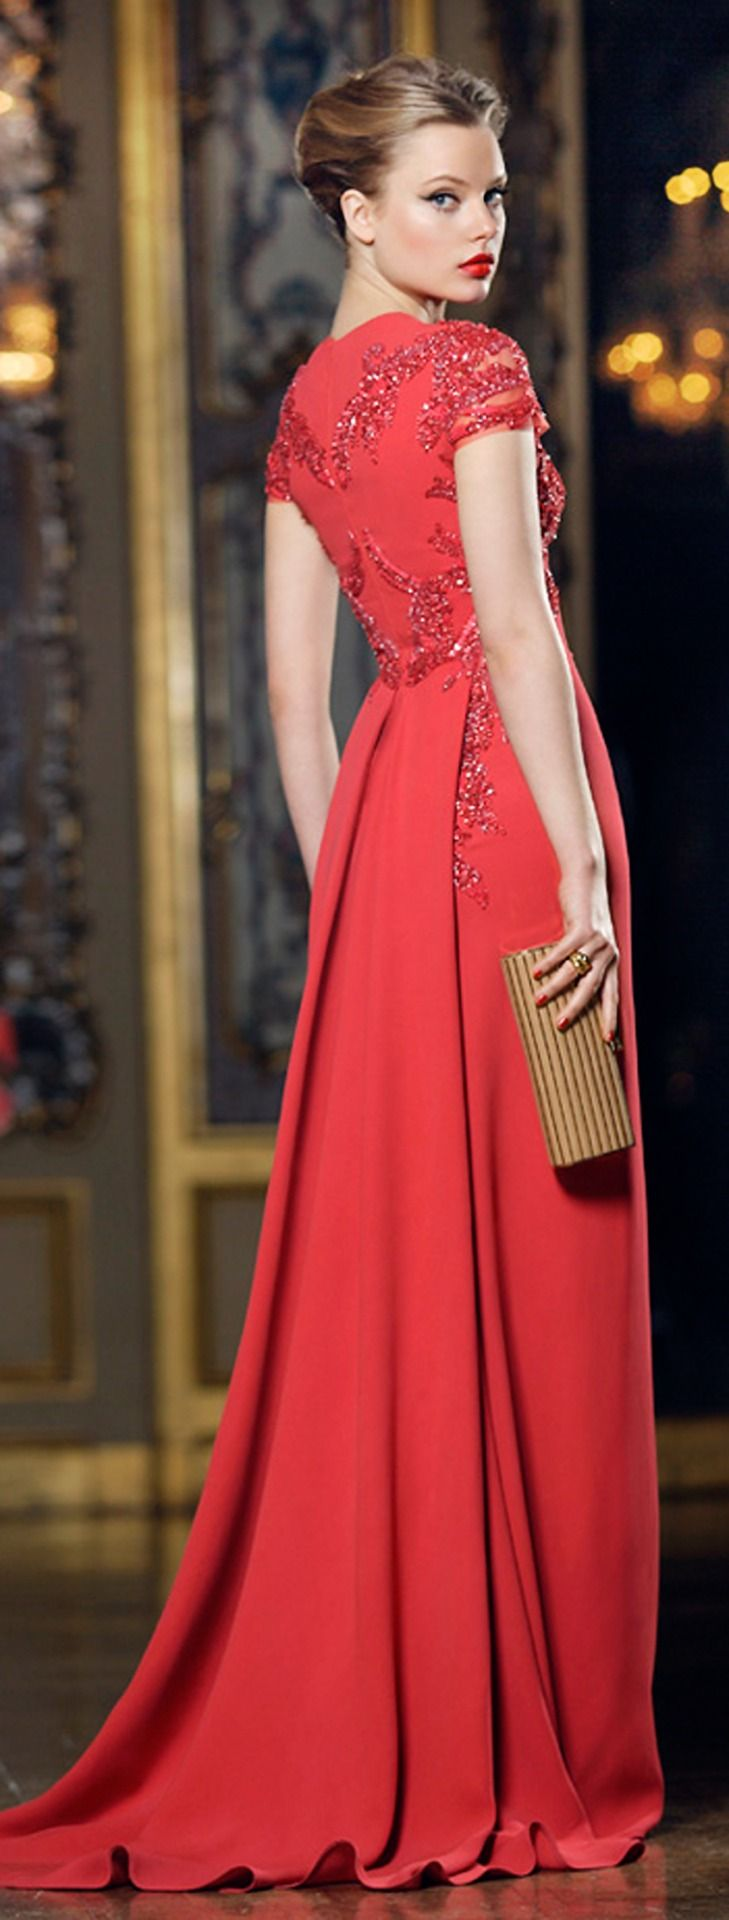 Glamorous Evening Gown ~ Red, Embellishments